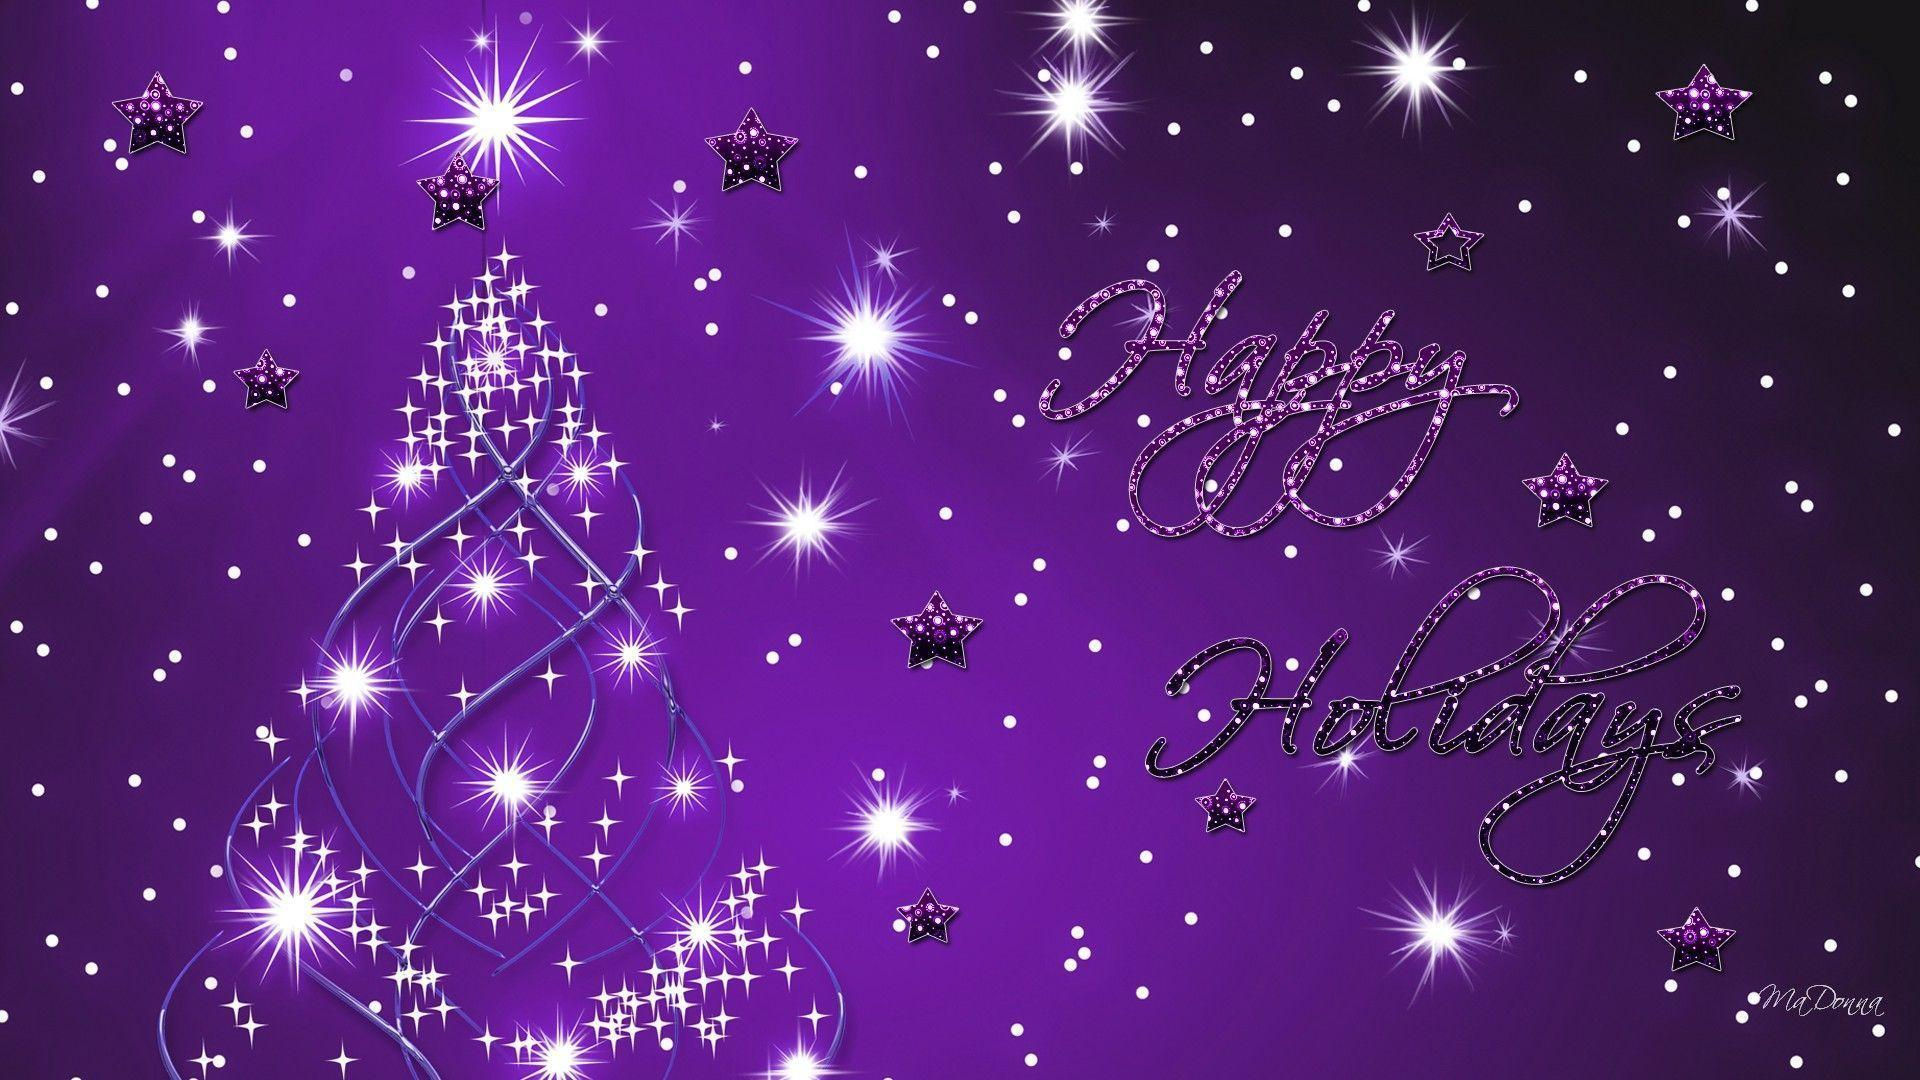 christmas wallpaper with bright - photo #17